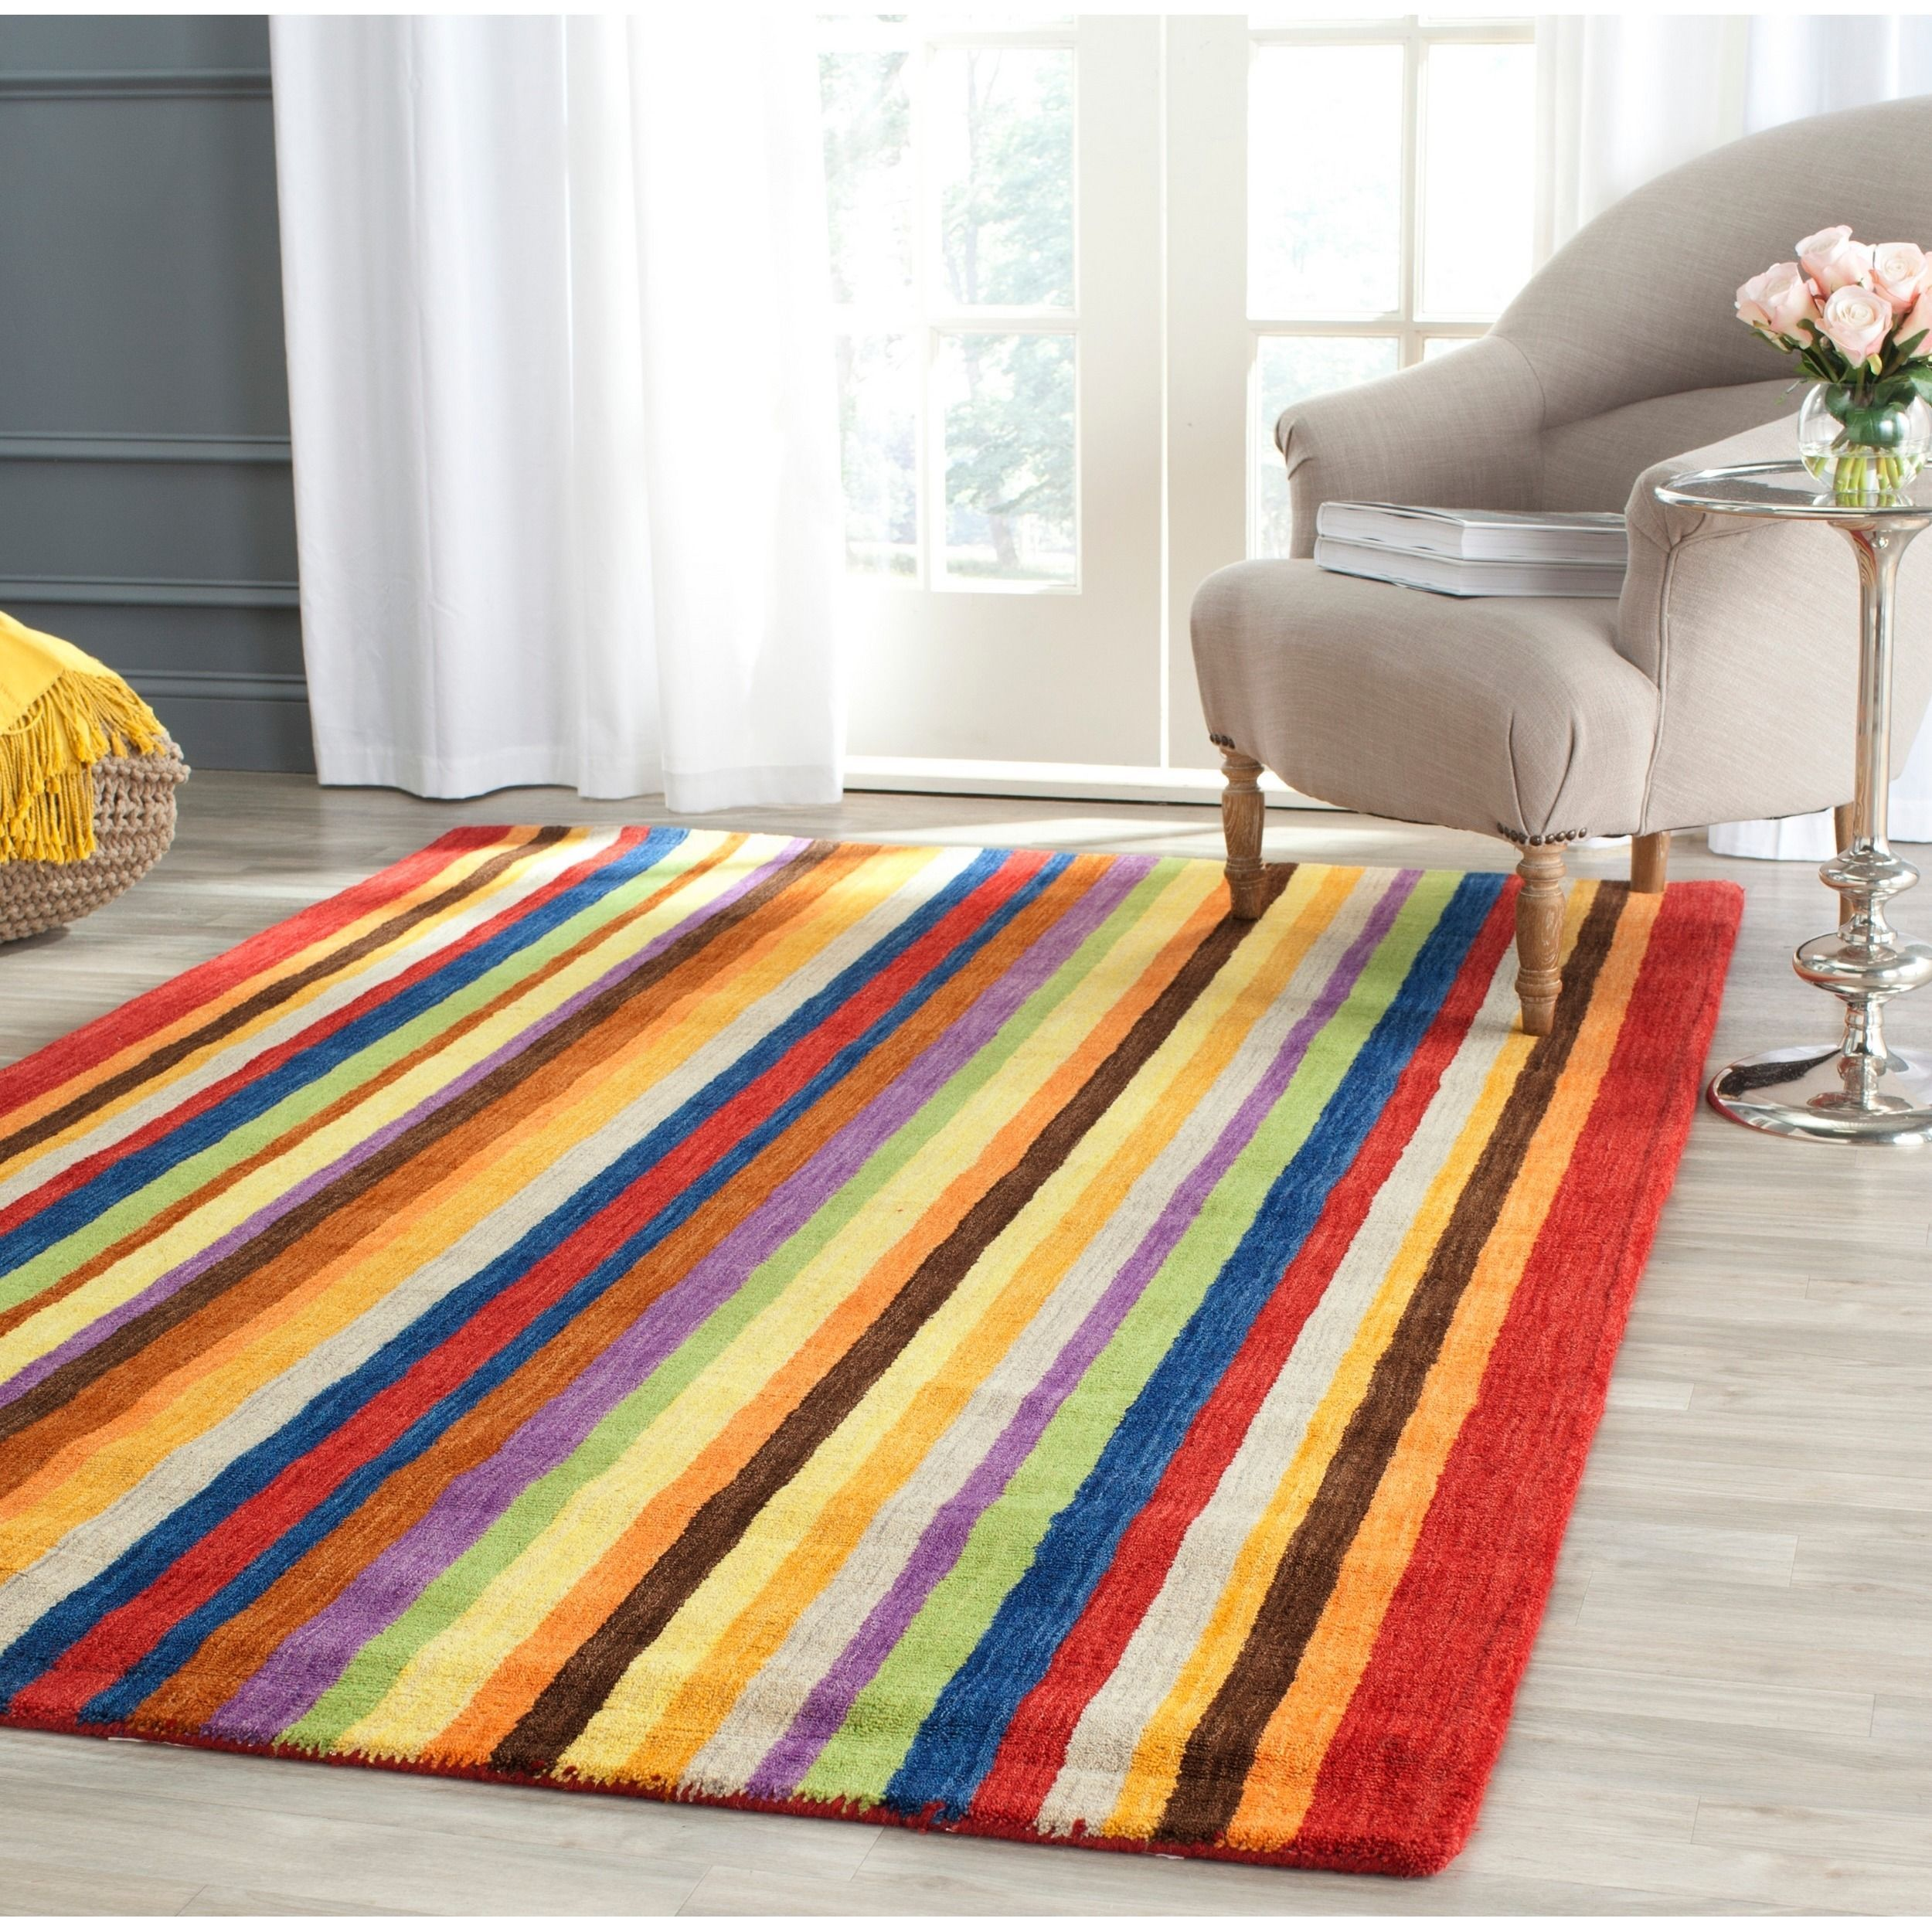 Safavieh Handmade Himalaya Red Multicolored Stripe Wool Gabbeh Rug